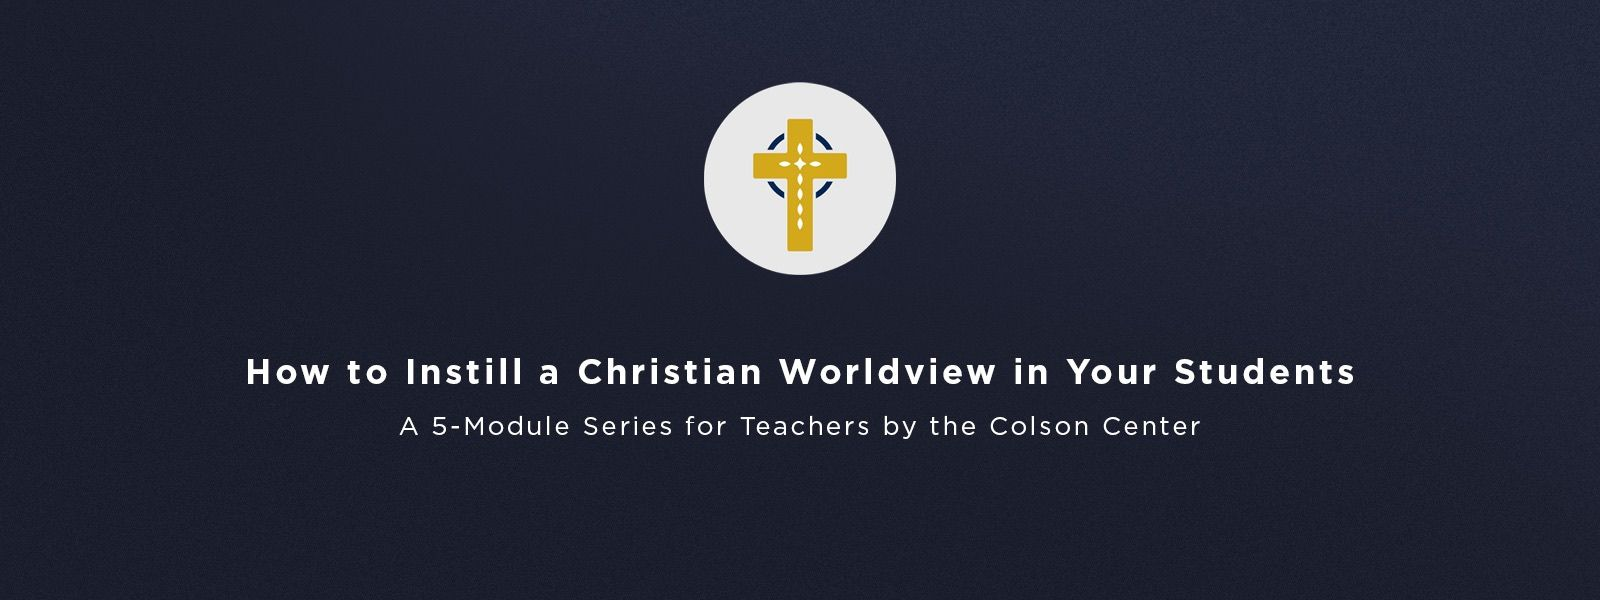 Colson Center Christian Worldview Series